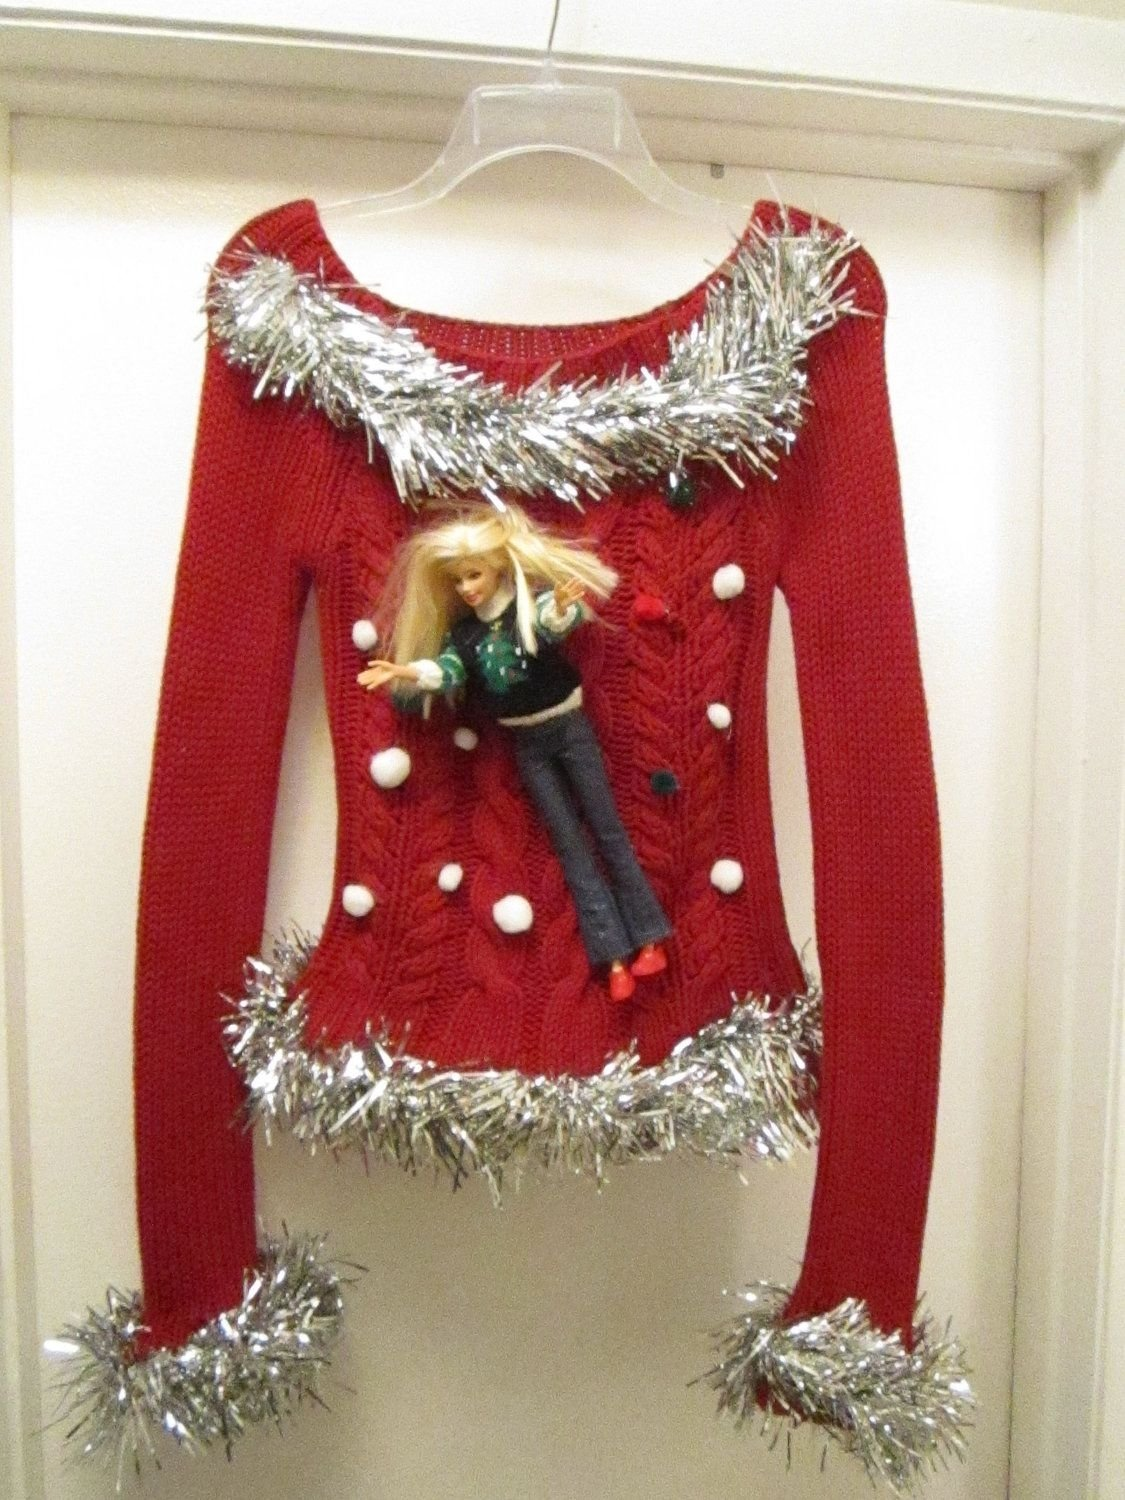 10 Fantastic Do It Yourself Ugly Christmas Sweater Ideas barbie ugly christmas sweater size xsmall ho ho ho toms of laughs 2020